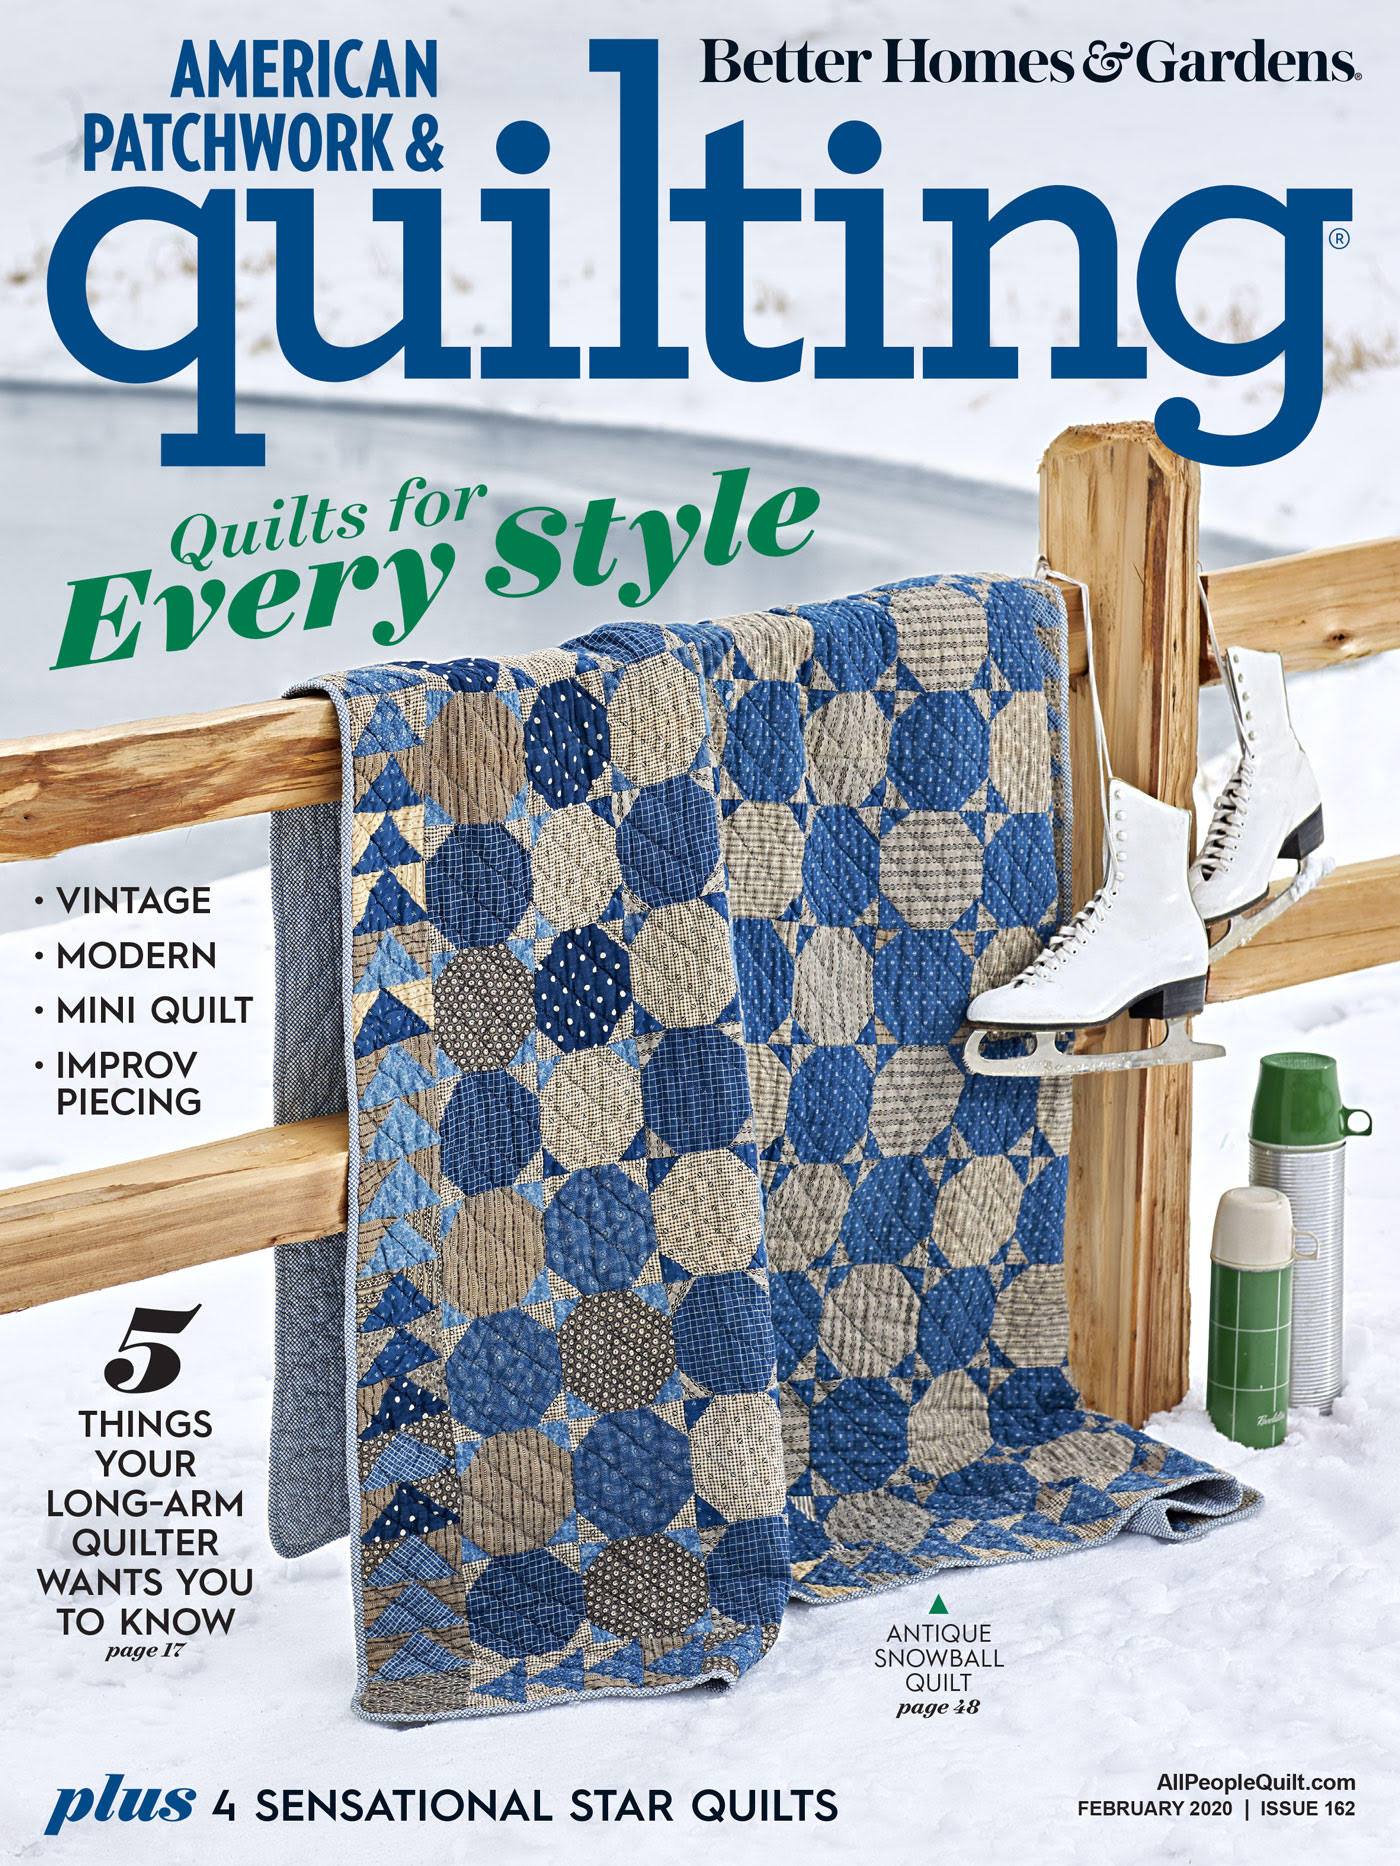 American Patchwork and Quilting Cover Feb 2020